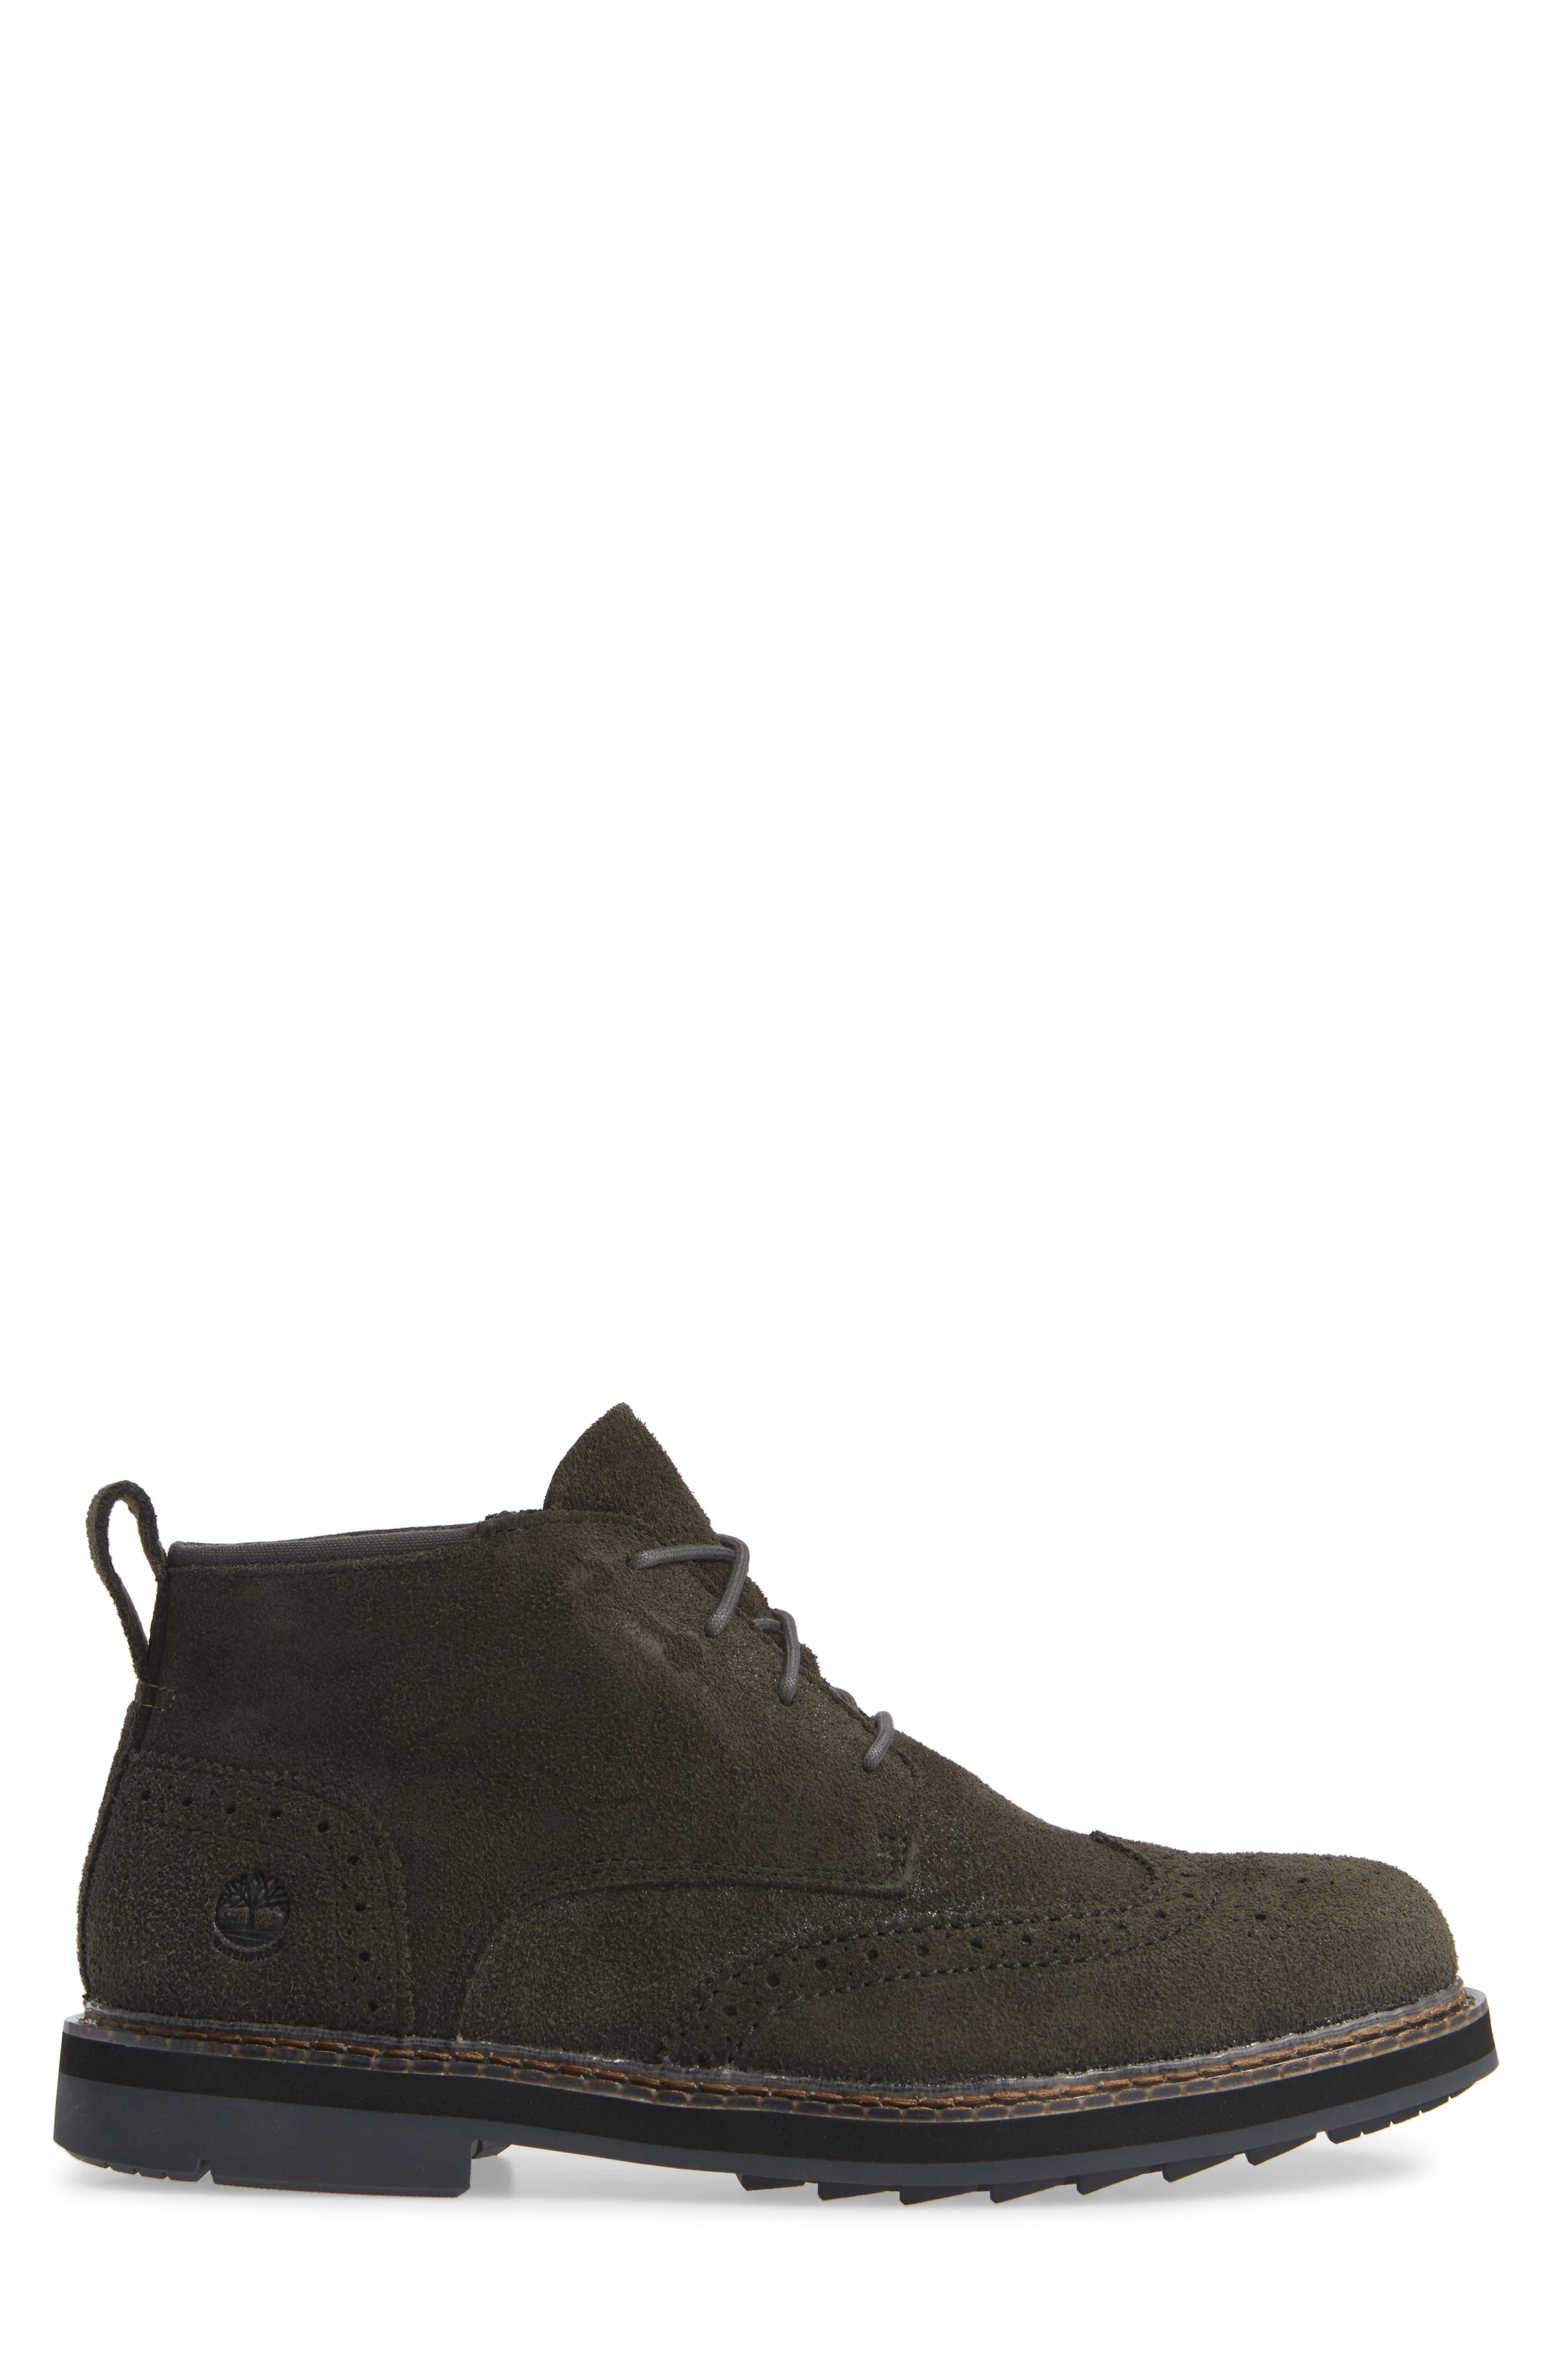 Squall Canyon Waterproof Wingtip Chukka Boot,                             Alternate thumbnail 3, color,                             VINTAGE GREEN SUEDE